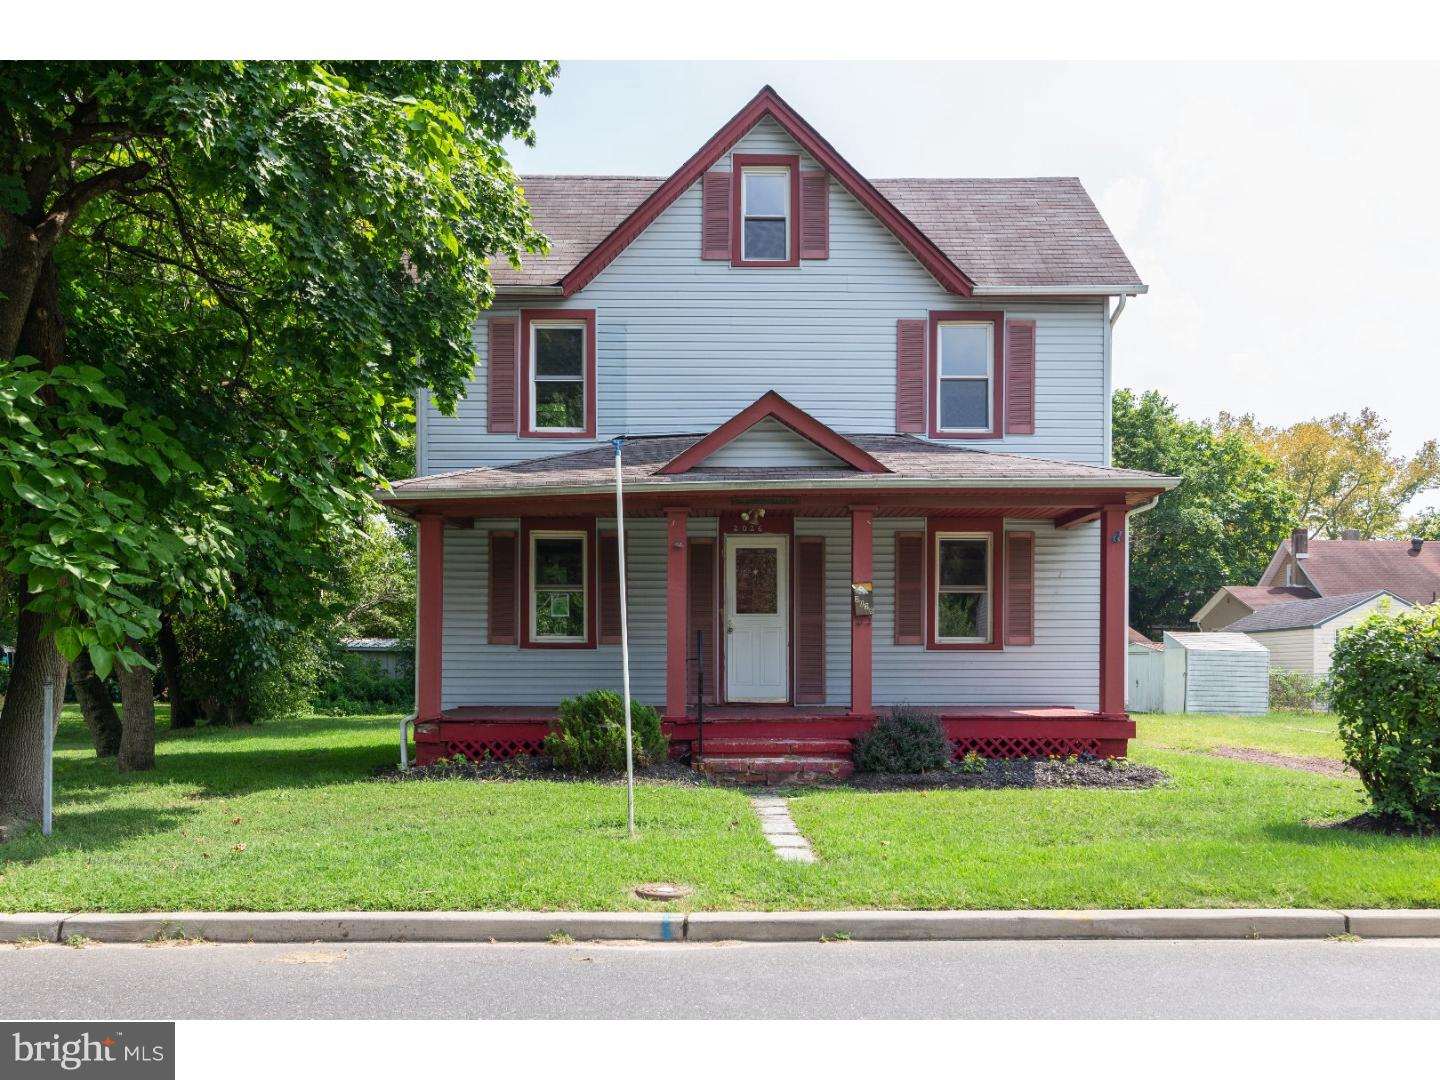 Single Family Home for Sale at 2026 ROWLAND Street Cinnaminson, New Jersey 08077 United States